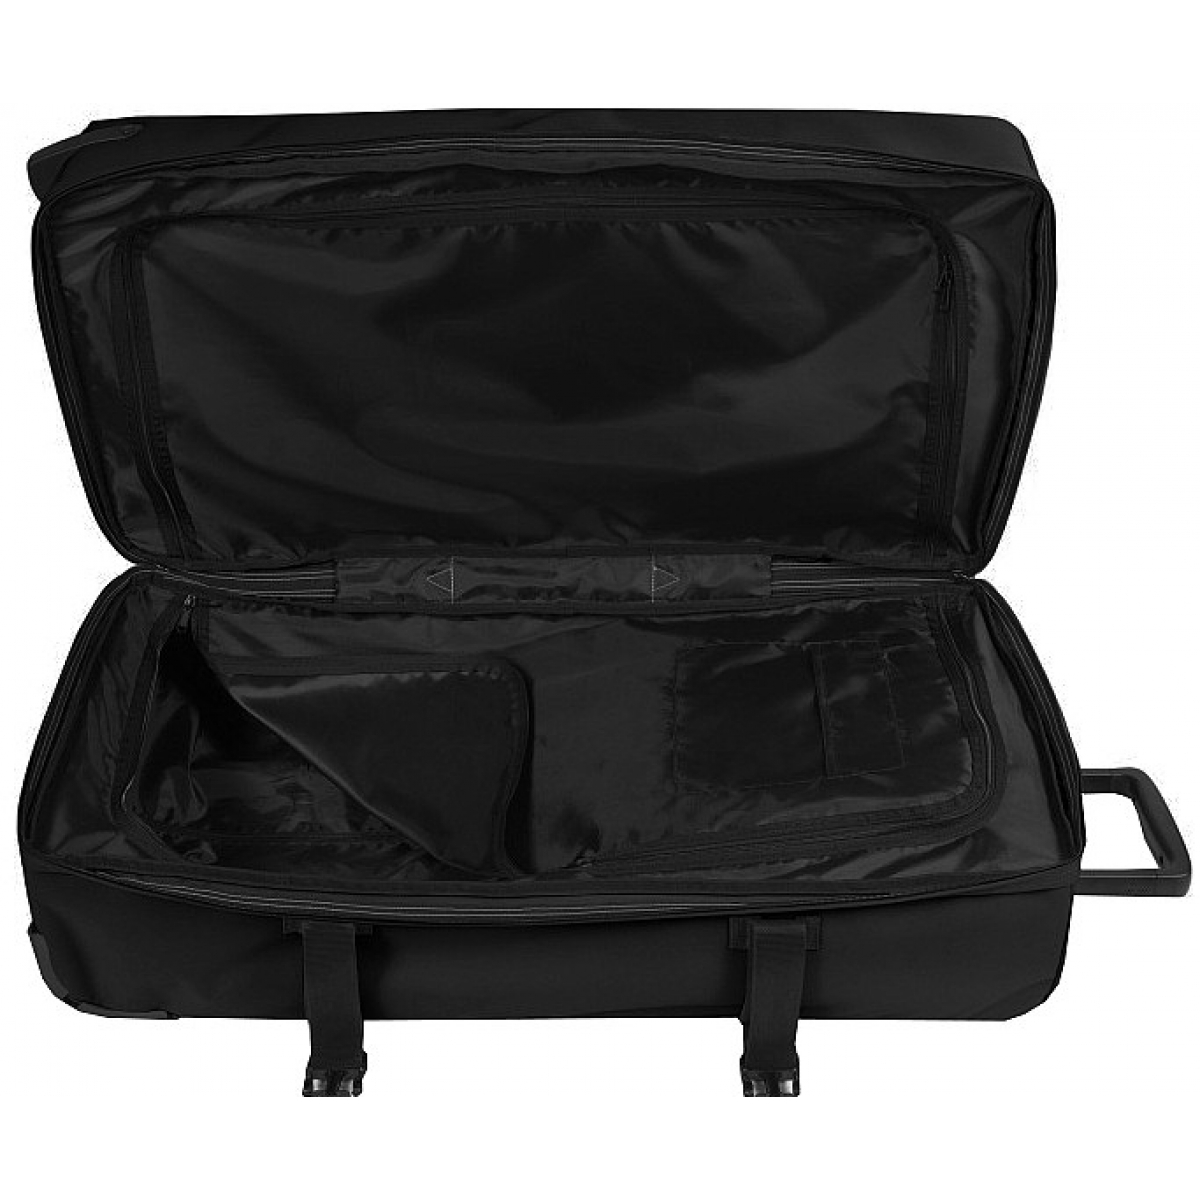 sac de voyage roulettes eastpak tranverz l ek63l ek63l77h couleur principale assortis. Black Bedroom Furniture Sets. Home Design Ideas